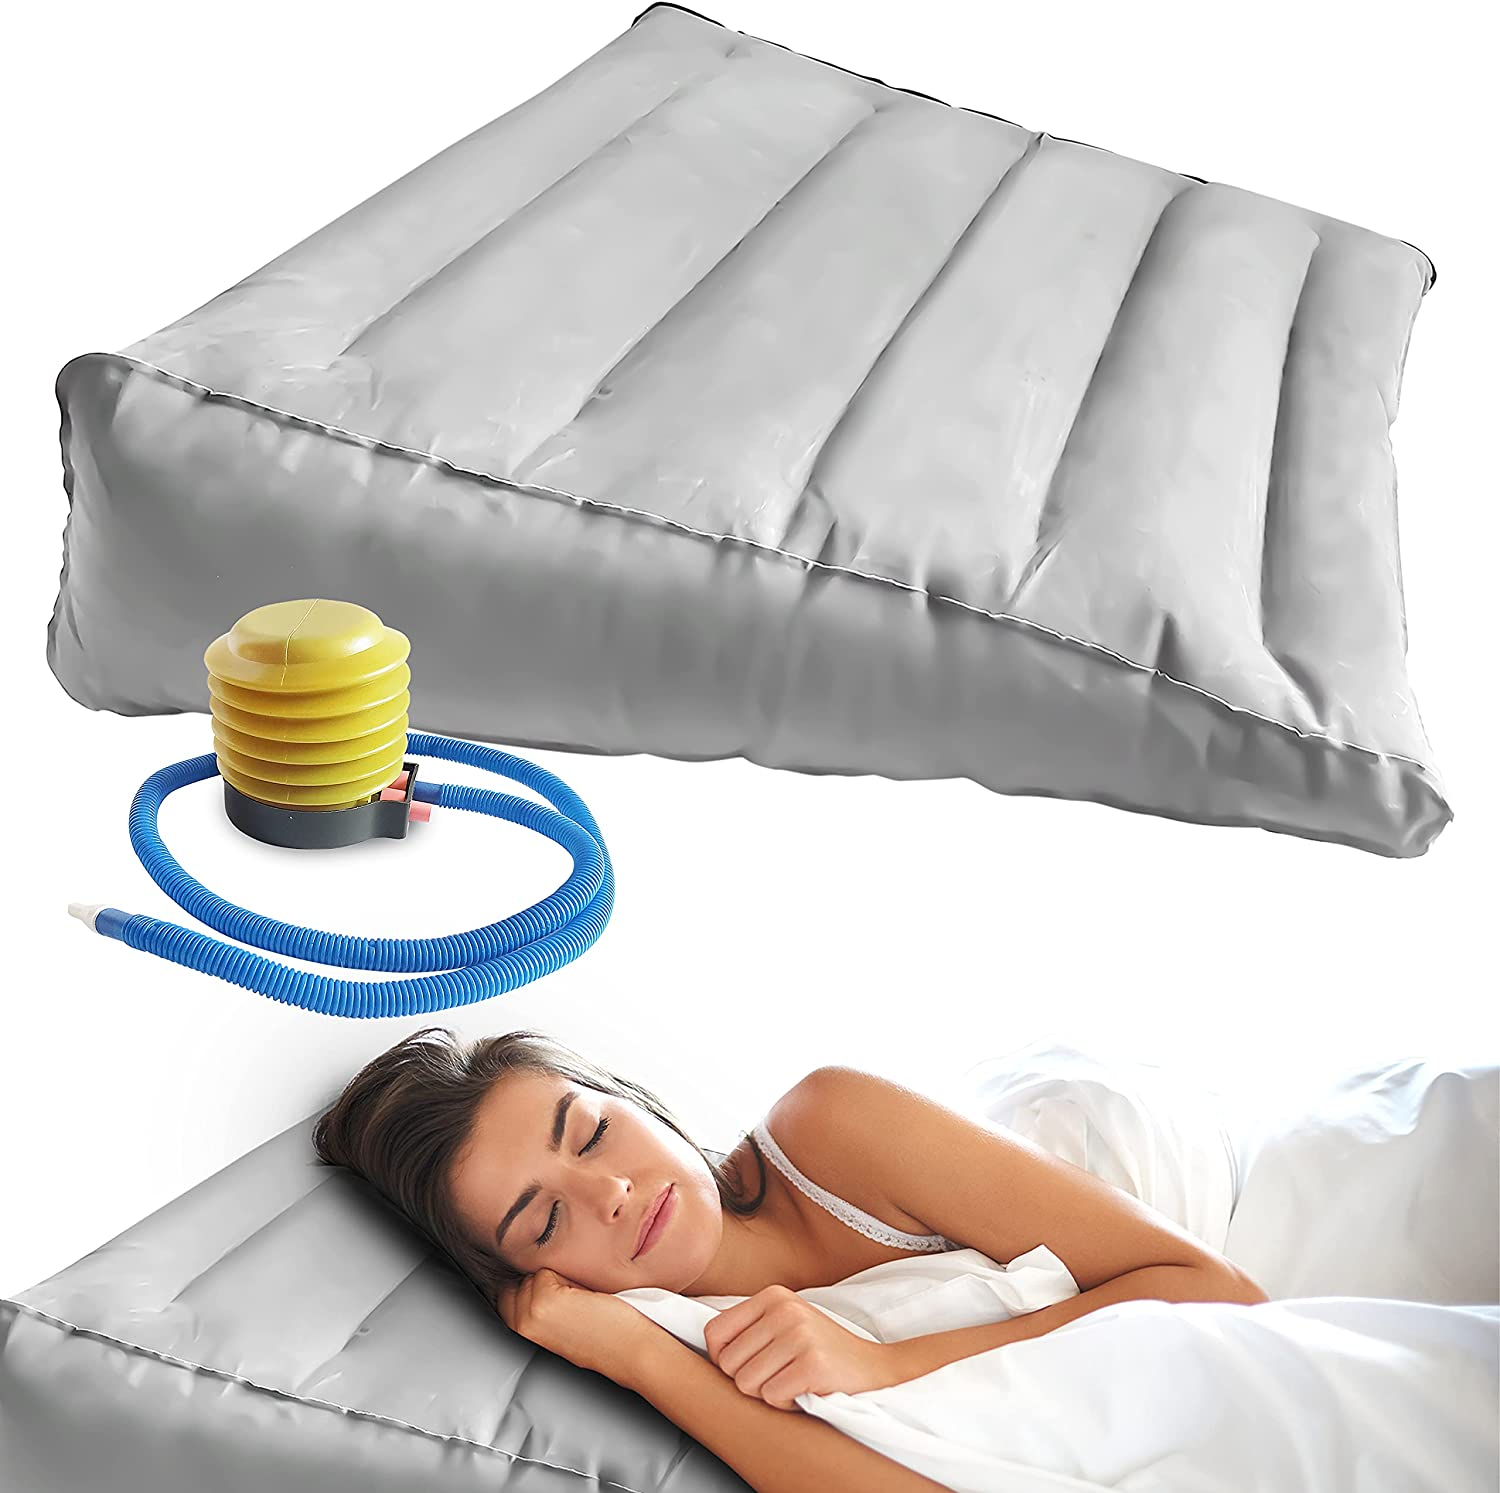 Inflatable Wedge Pillow San Diego Mall - Elevate Popular product Knee Leg Back Your Support